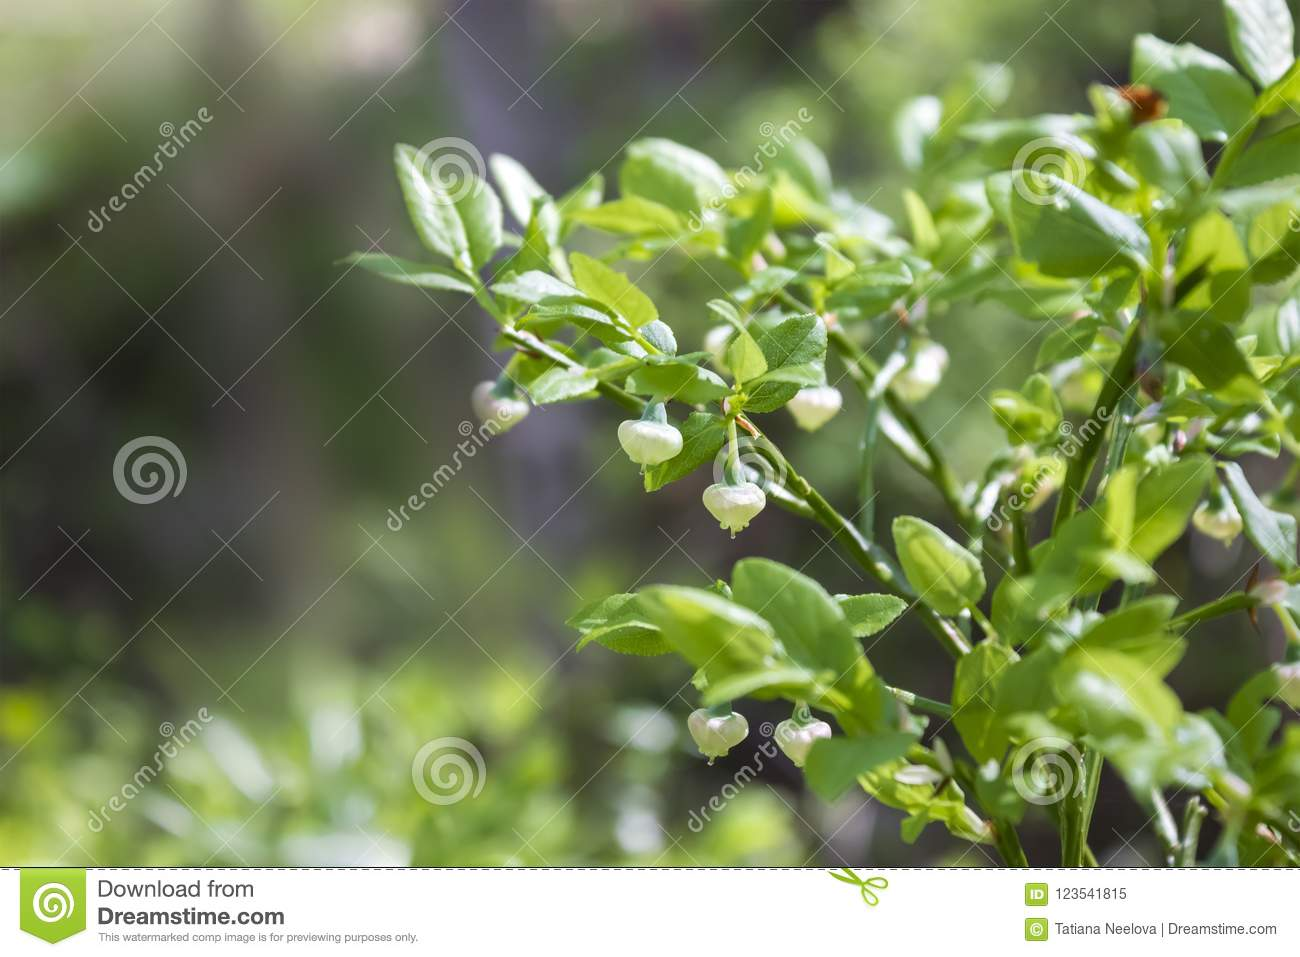 A photo of blueberry, Vaccinium uliginosum, flowers in the spring forest. Sunny day and wild green young blooming bilberries in ea